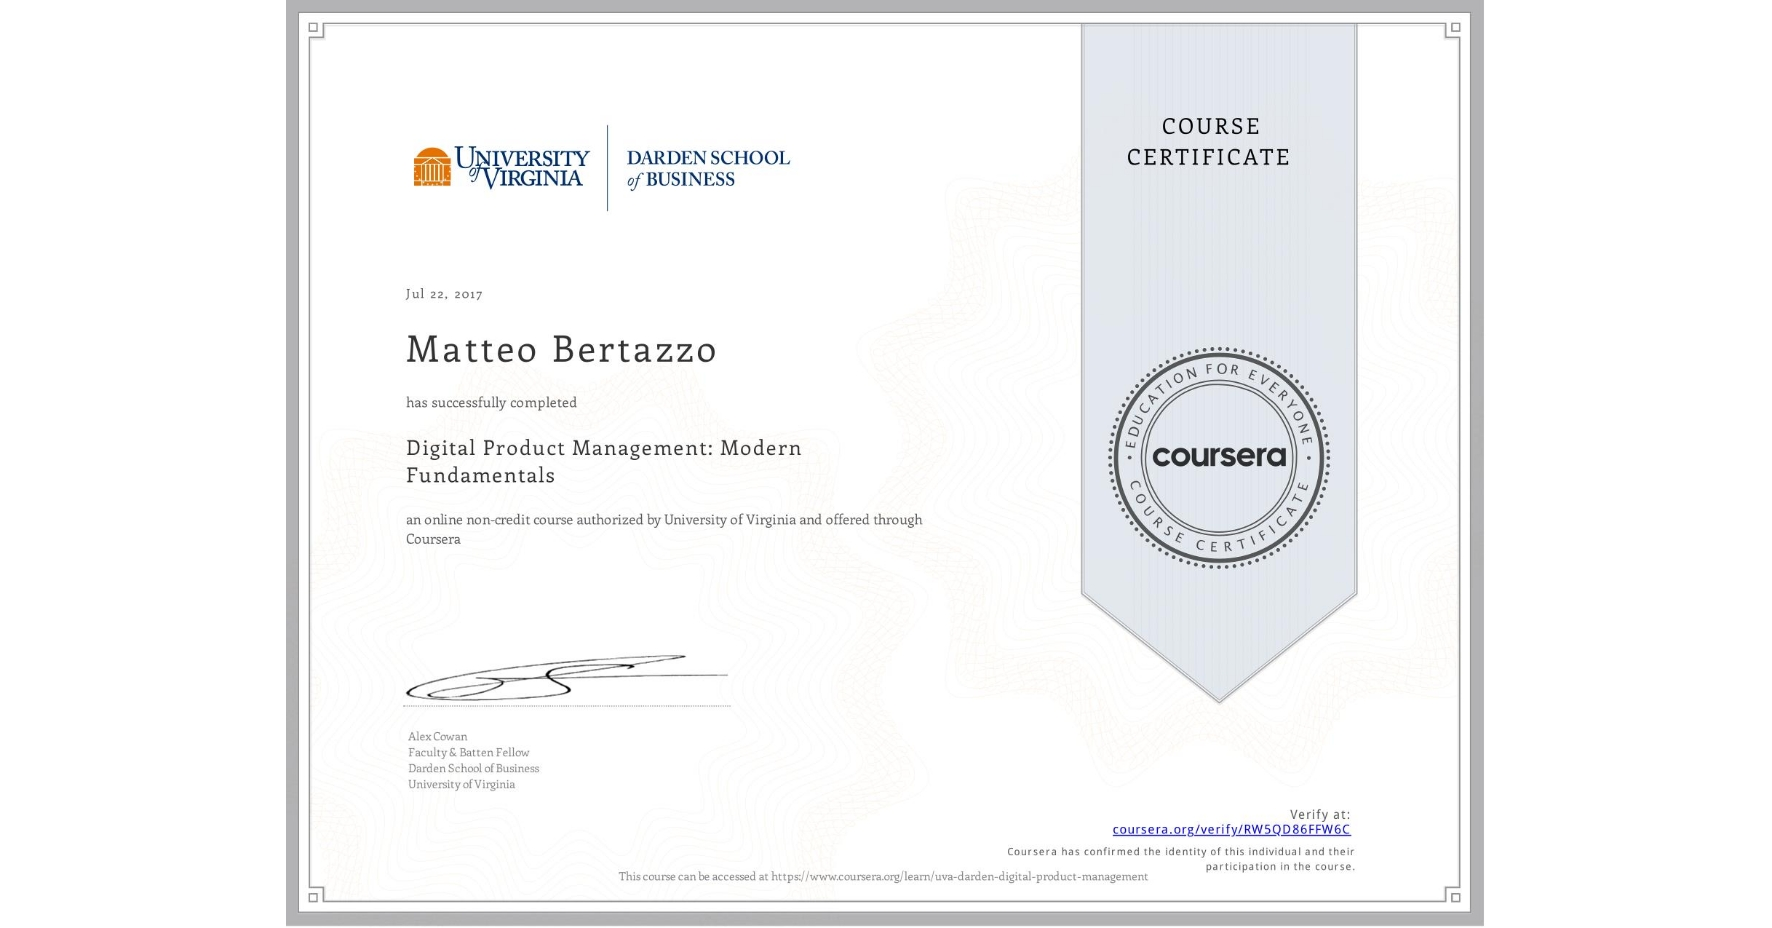 View certificate for Matteo Bertazzo, Digital Product Management: Modern Fundamentals, an online non-credit course authorized by University of Virginia and offered through Coursera